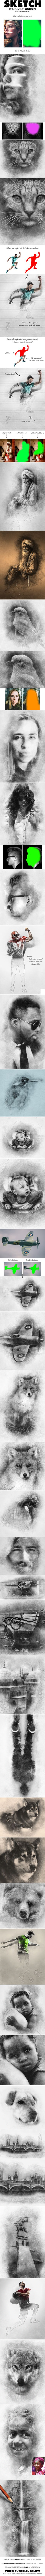 Sketch Photoshop Action (With 3D Pop Out Effect) • Only available here! → https://graphicriver.net/item/sketch-photoshop-action-with-3d-pop-out-effect/17361333?ref=pxcr